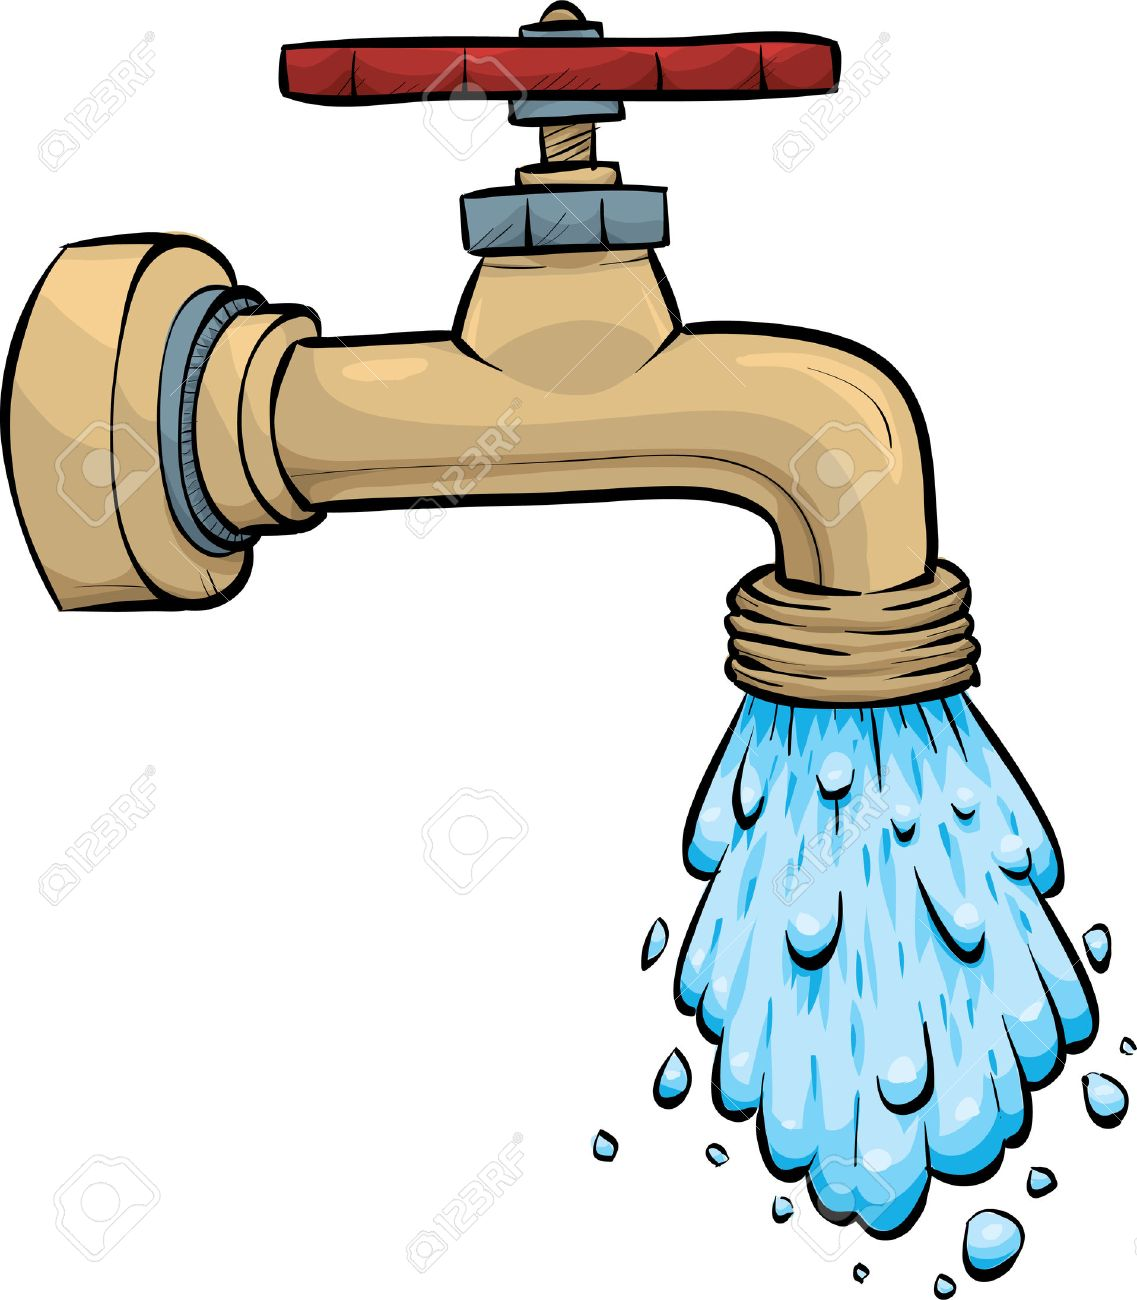 Water Pours From A Cartoon Metal Faucet. Royalty Free Cliparts ...